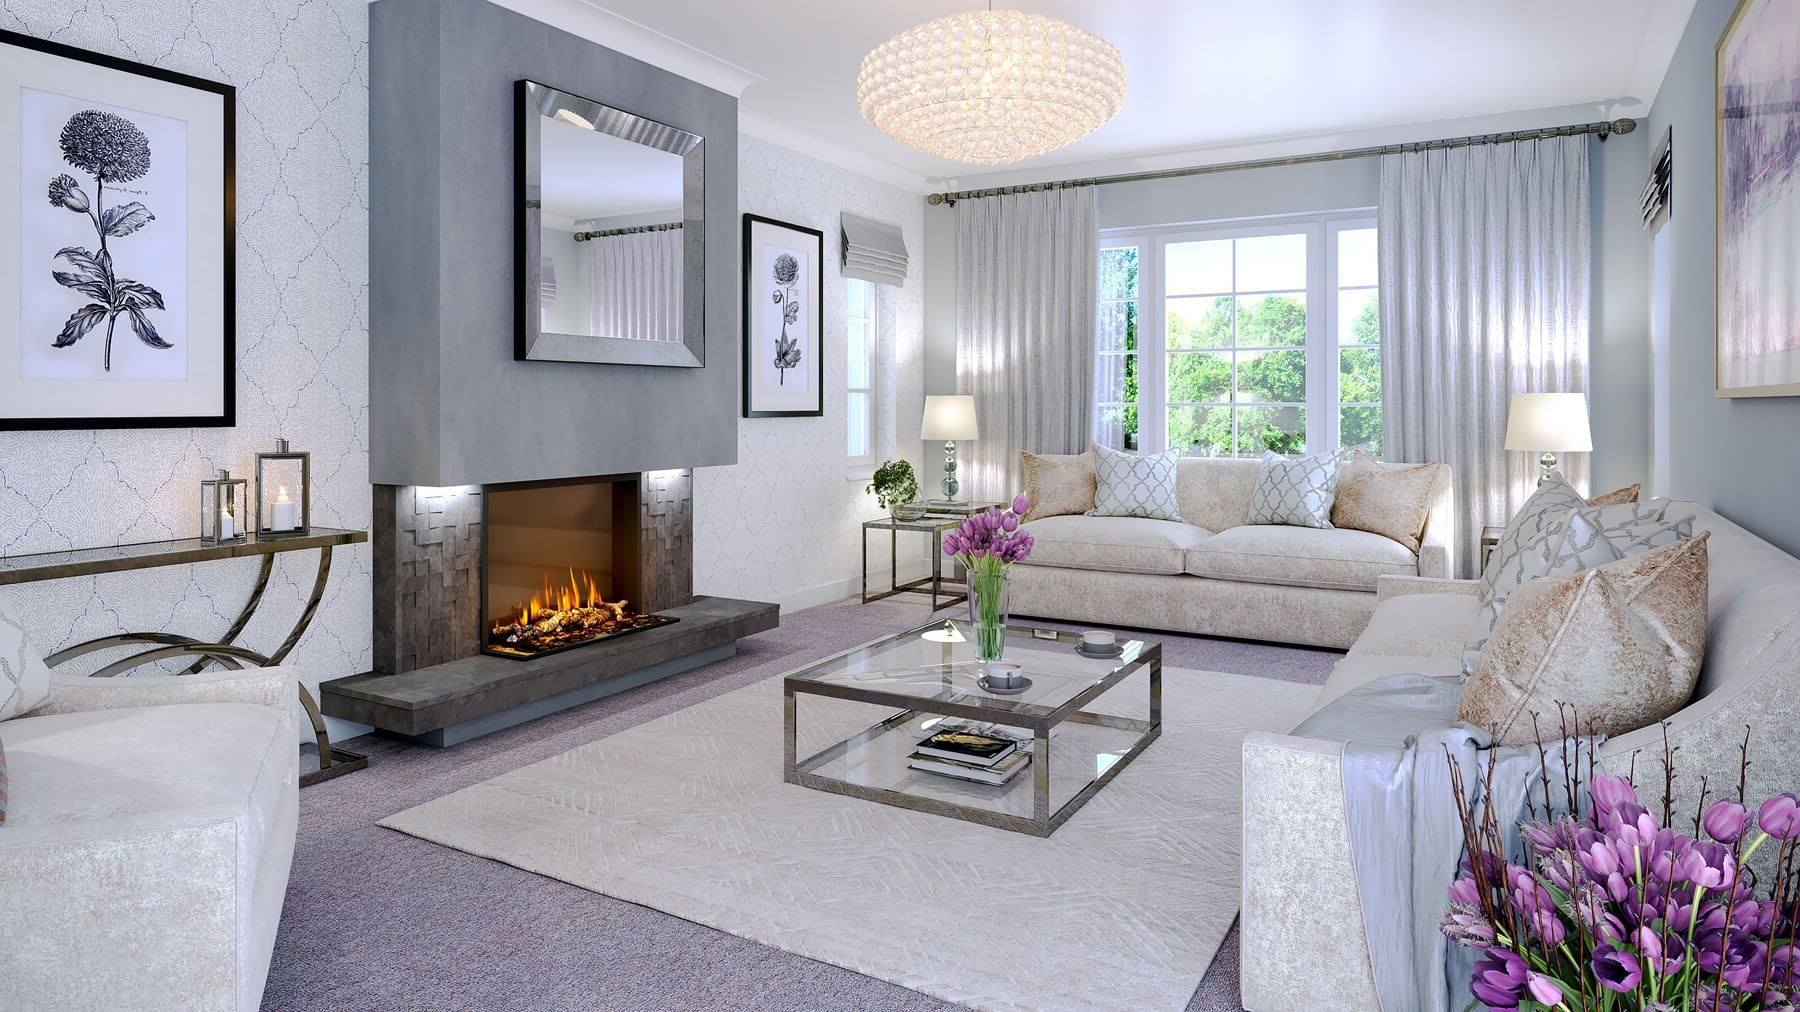 14 False Breast With Grey Mosaic Tiles And Floating Hearth 10+ Small Living Room With Chimney Breast Inspirations